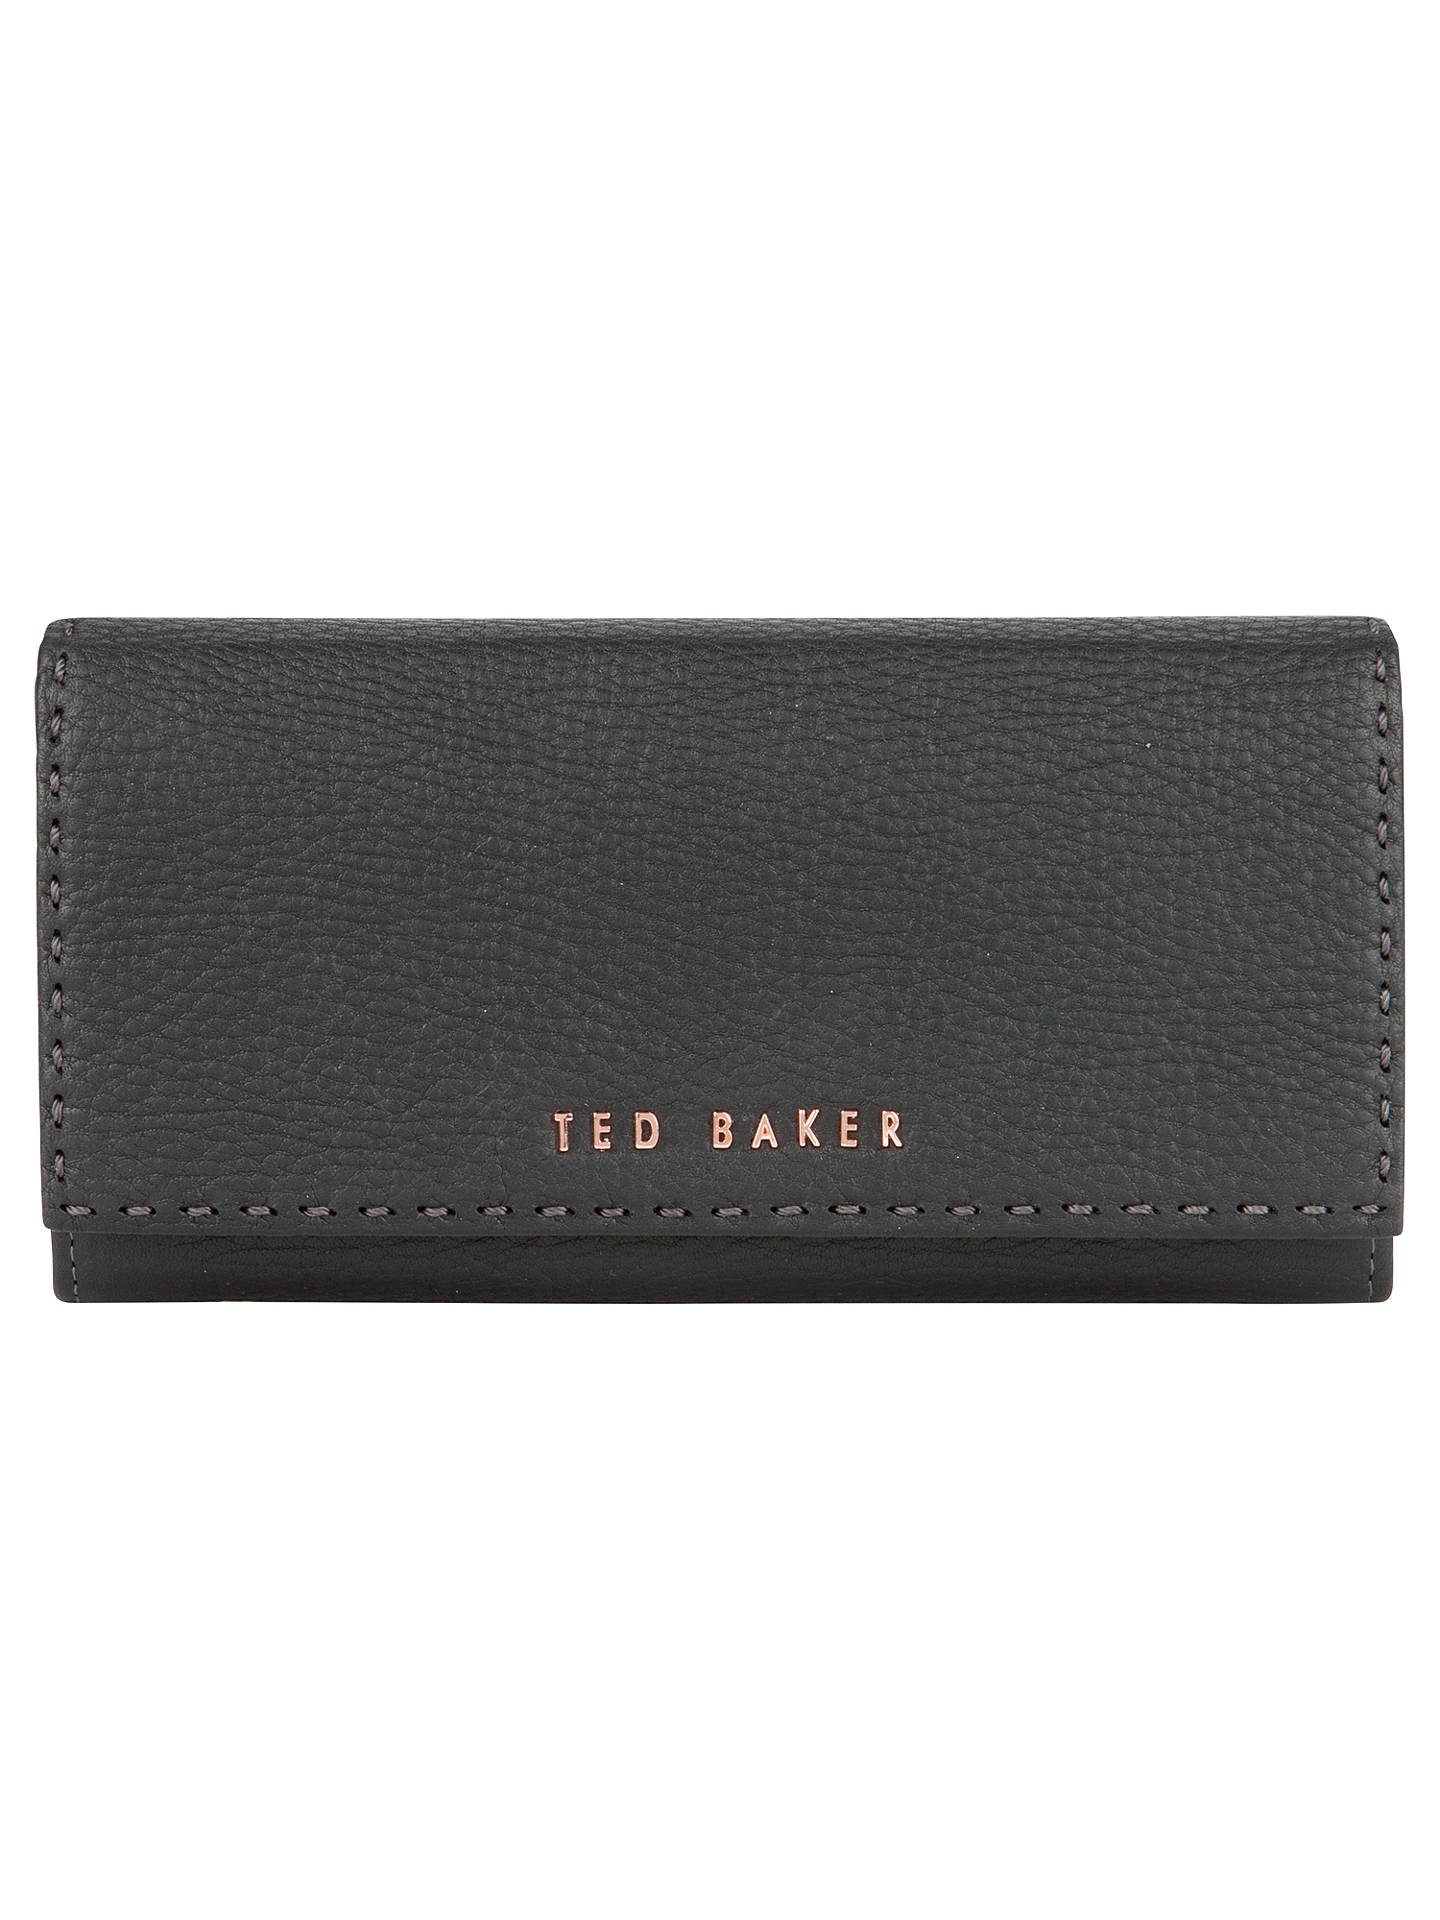 3fd8732a4 Ted Baker Sizzer Leather Matinee Wallet at John Lewis   Partners